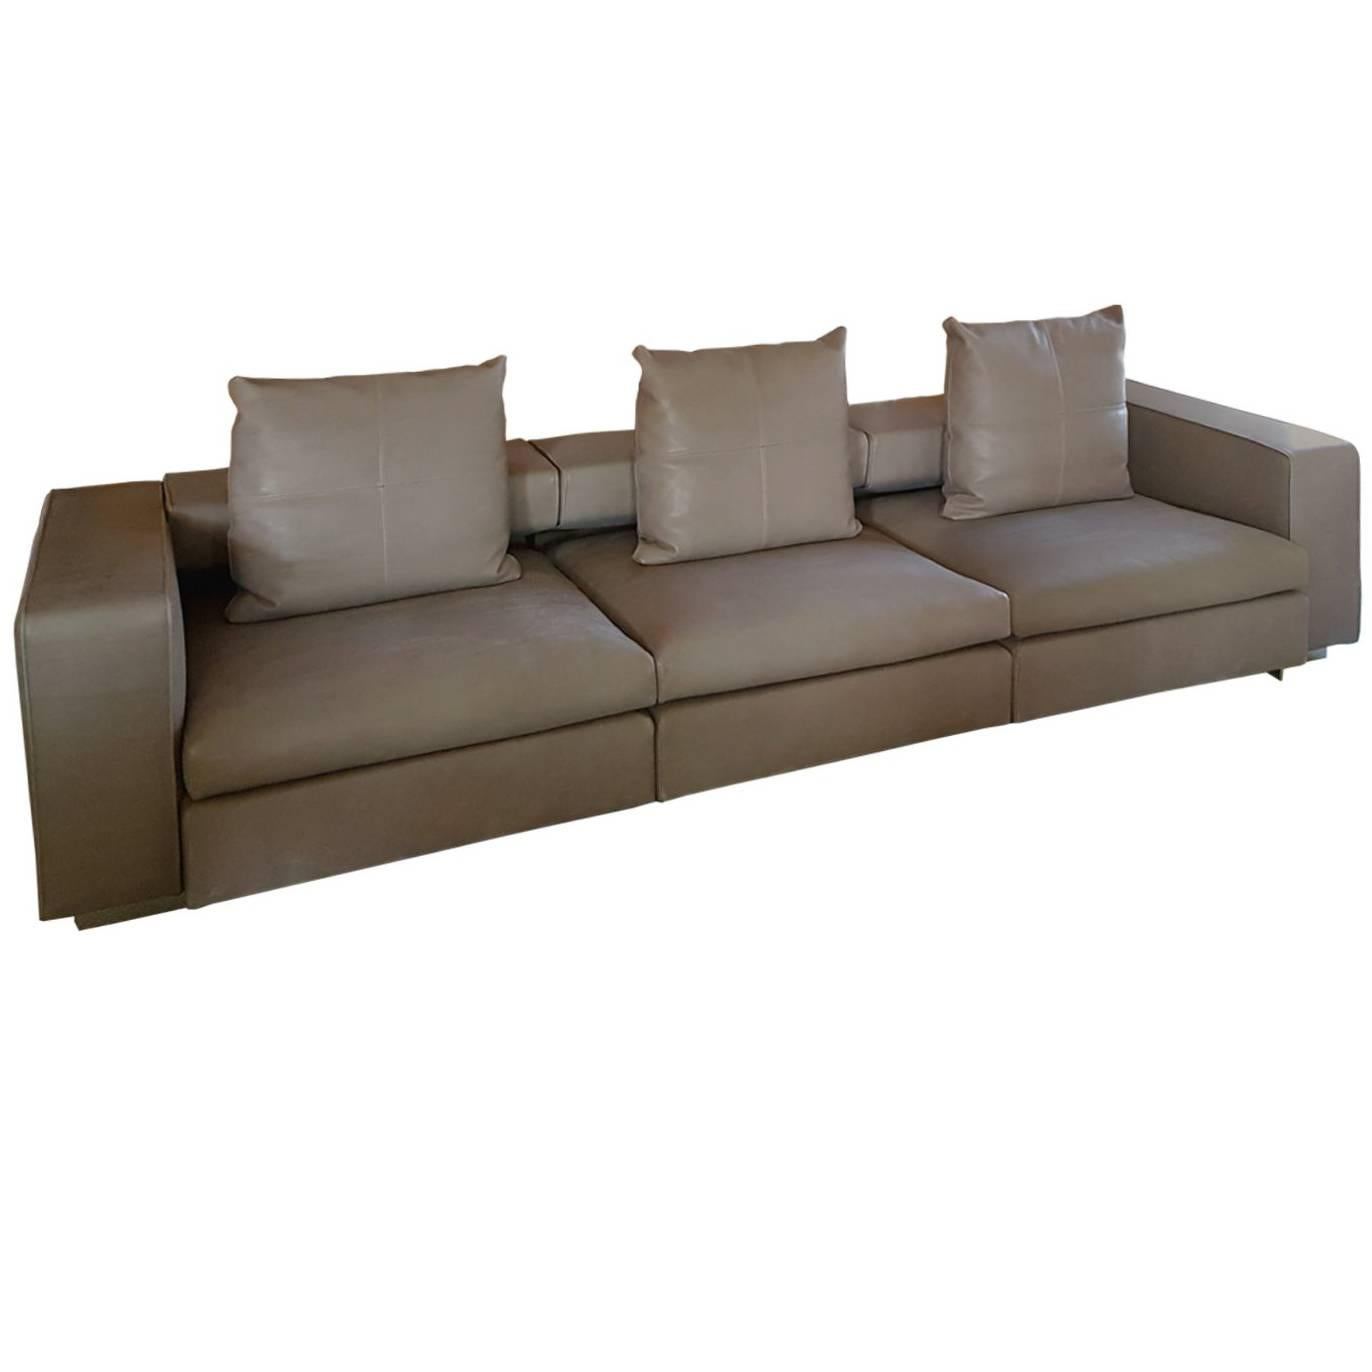 Groovy Contemporary Adoni Obsidian Sofa In 100 British Black Leather And Natural Wax Theyellowbook Wood Chair Design Ideas Theyellowbookinfo